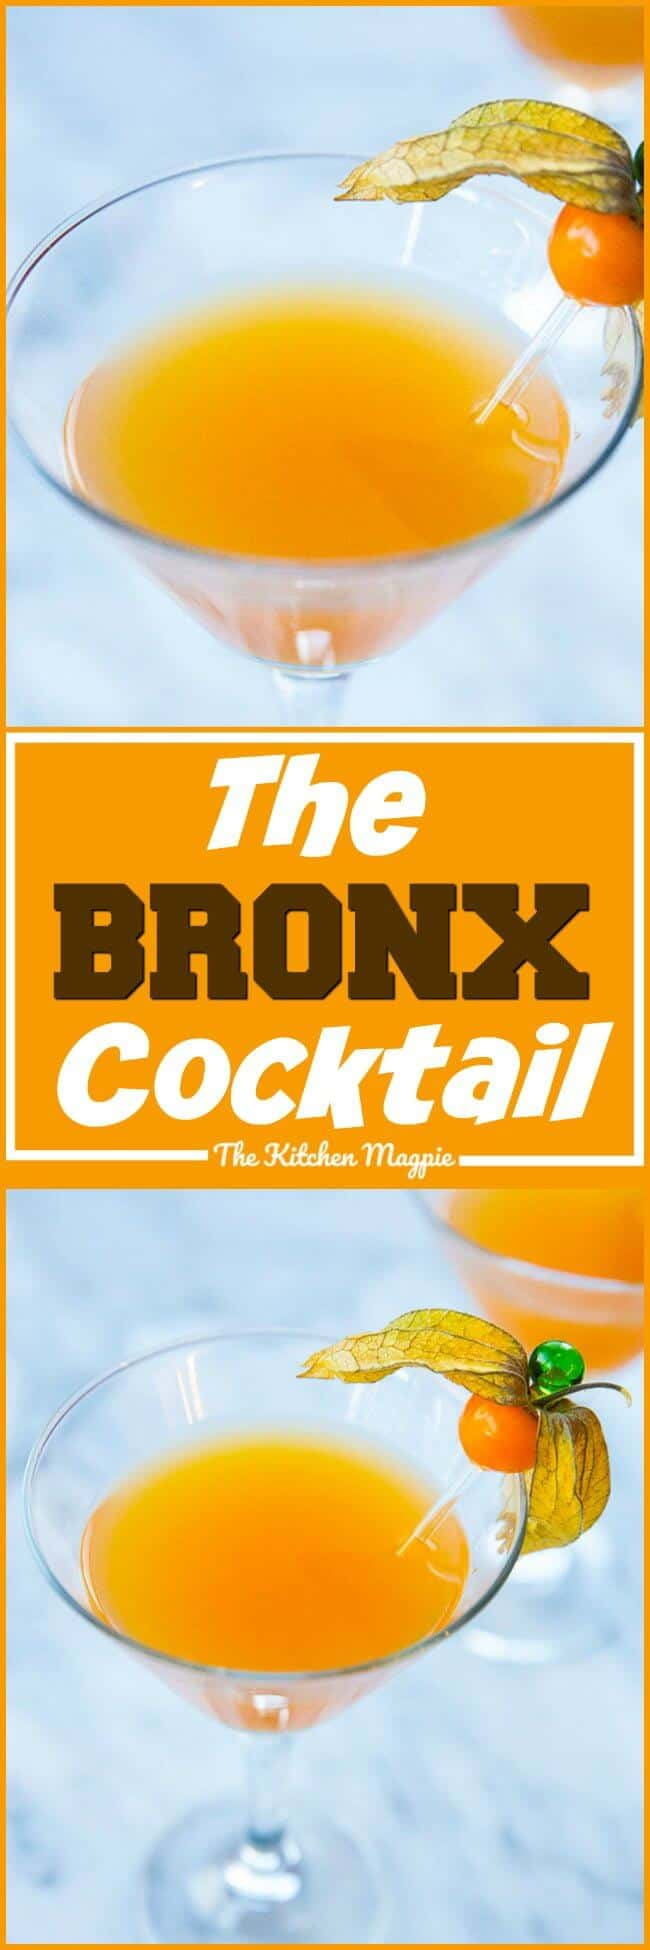 The Bronx Cocktail! Tasty and strong, this is one delicious cocktail! #cocktails #recipe #gin #vermouth #thebronx